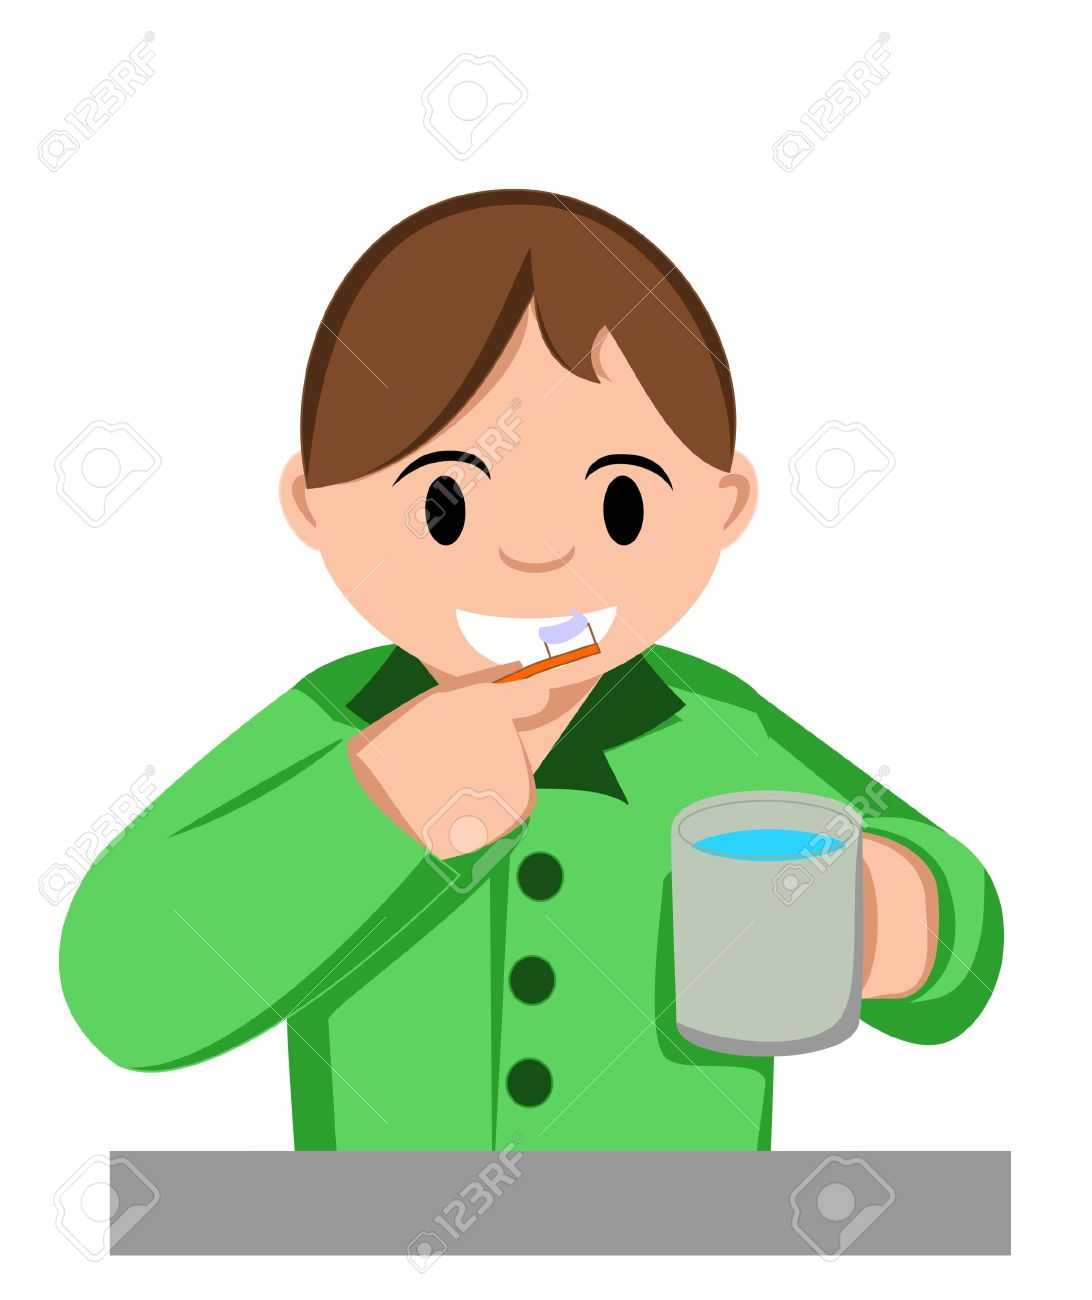 hight resolution of boy brush teeth royalty free cliparts vectors and stock